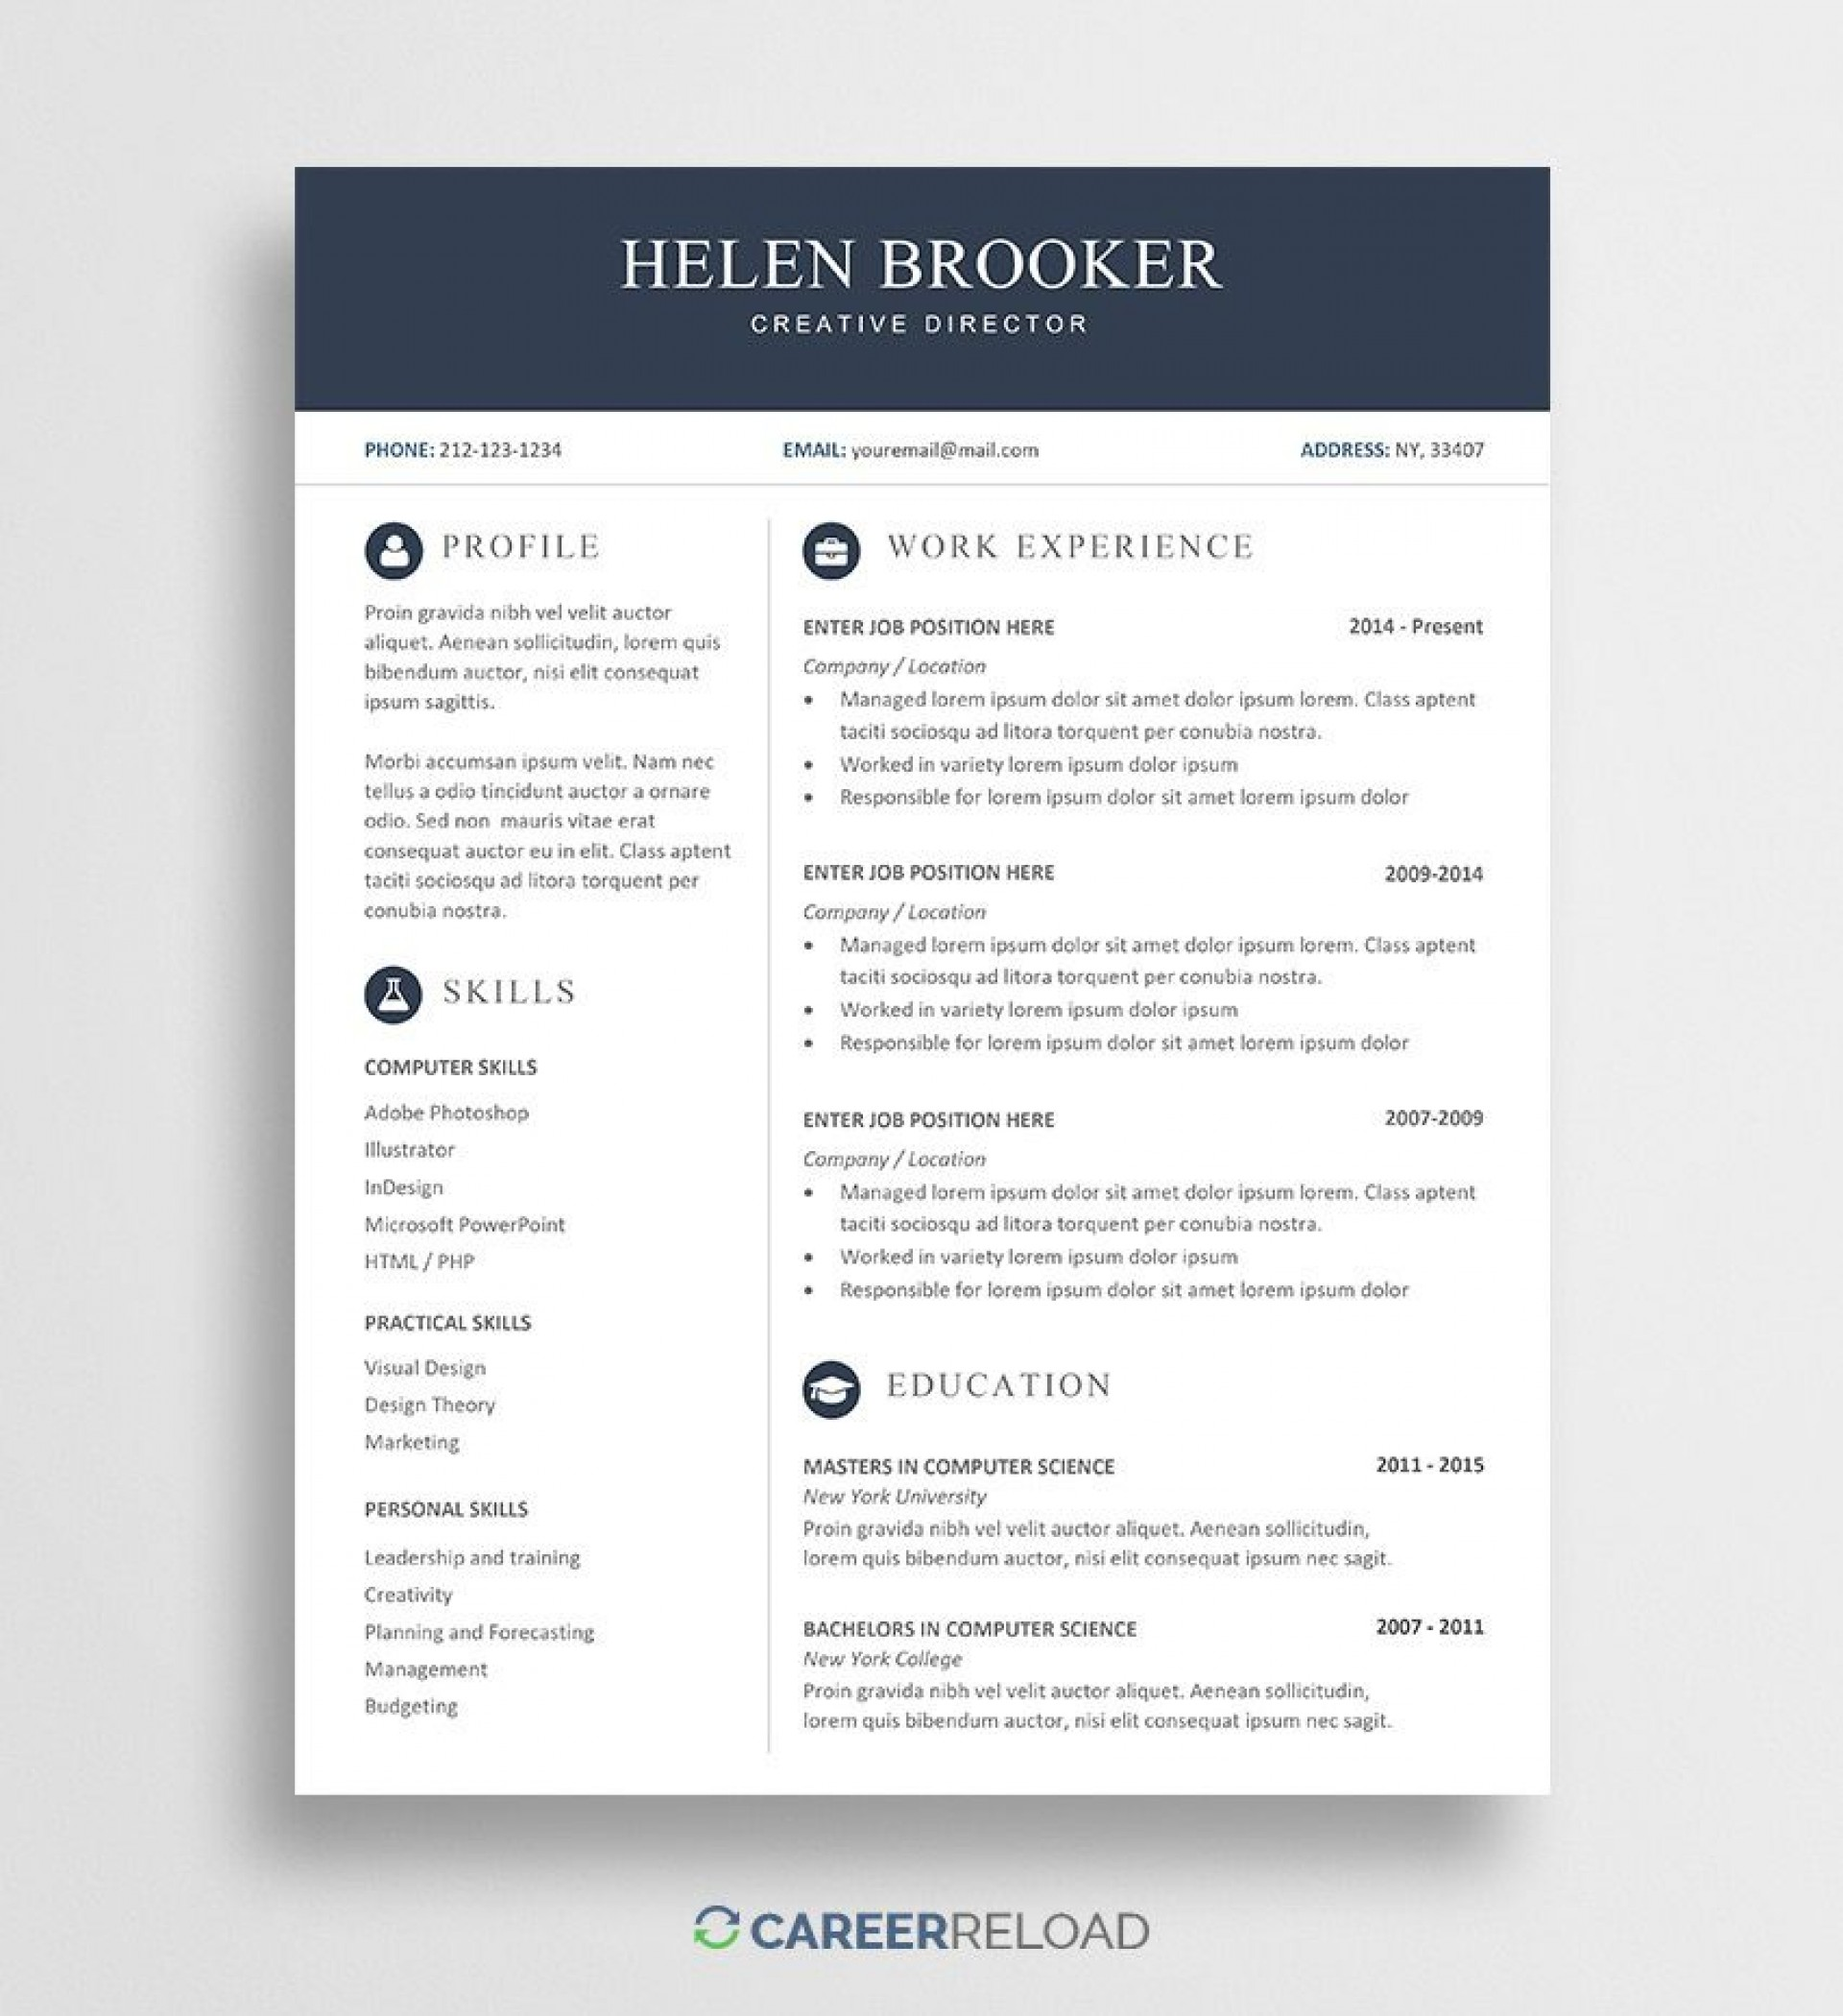 005 Awesome Word Resume Template Free Image  Microsoft 2010 Download 2019 Modern1920